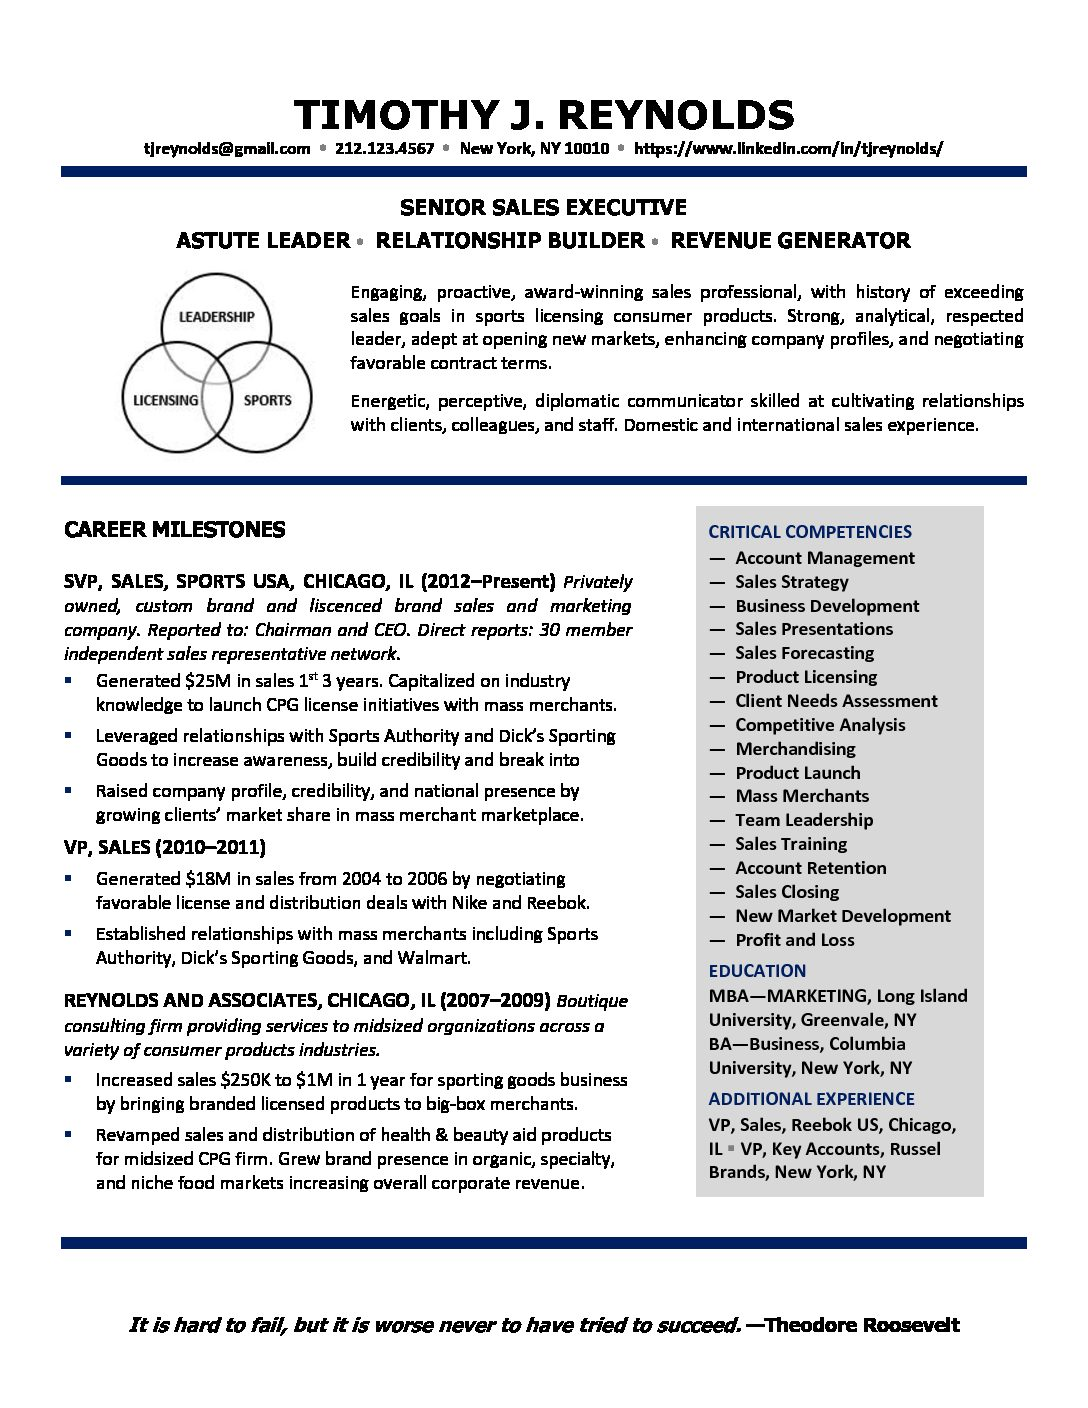 Networking 1 Year Experience Resume One Page Power Networking Resume